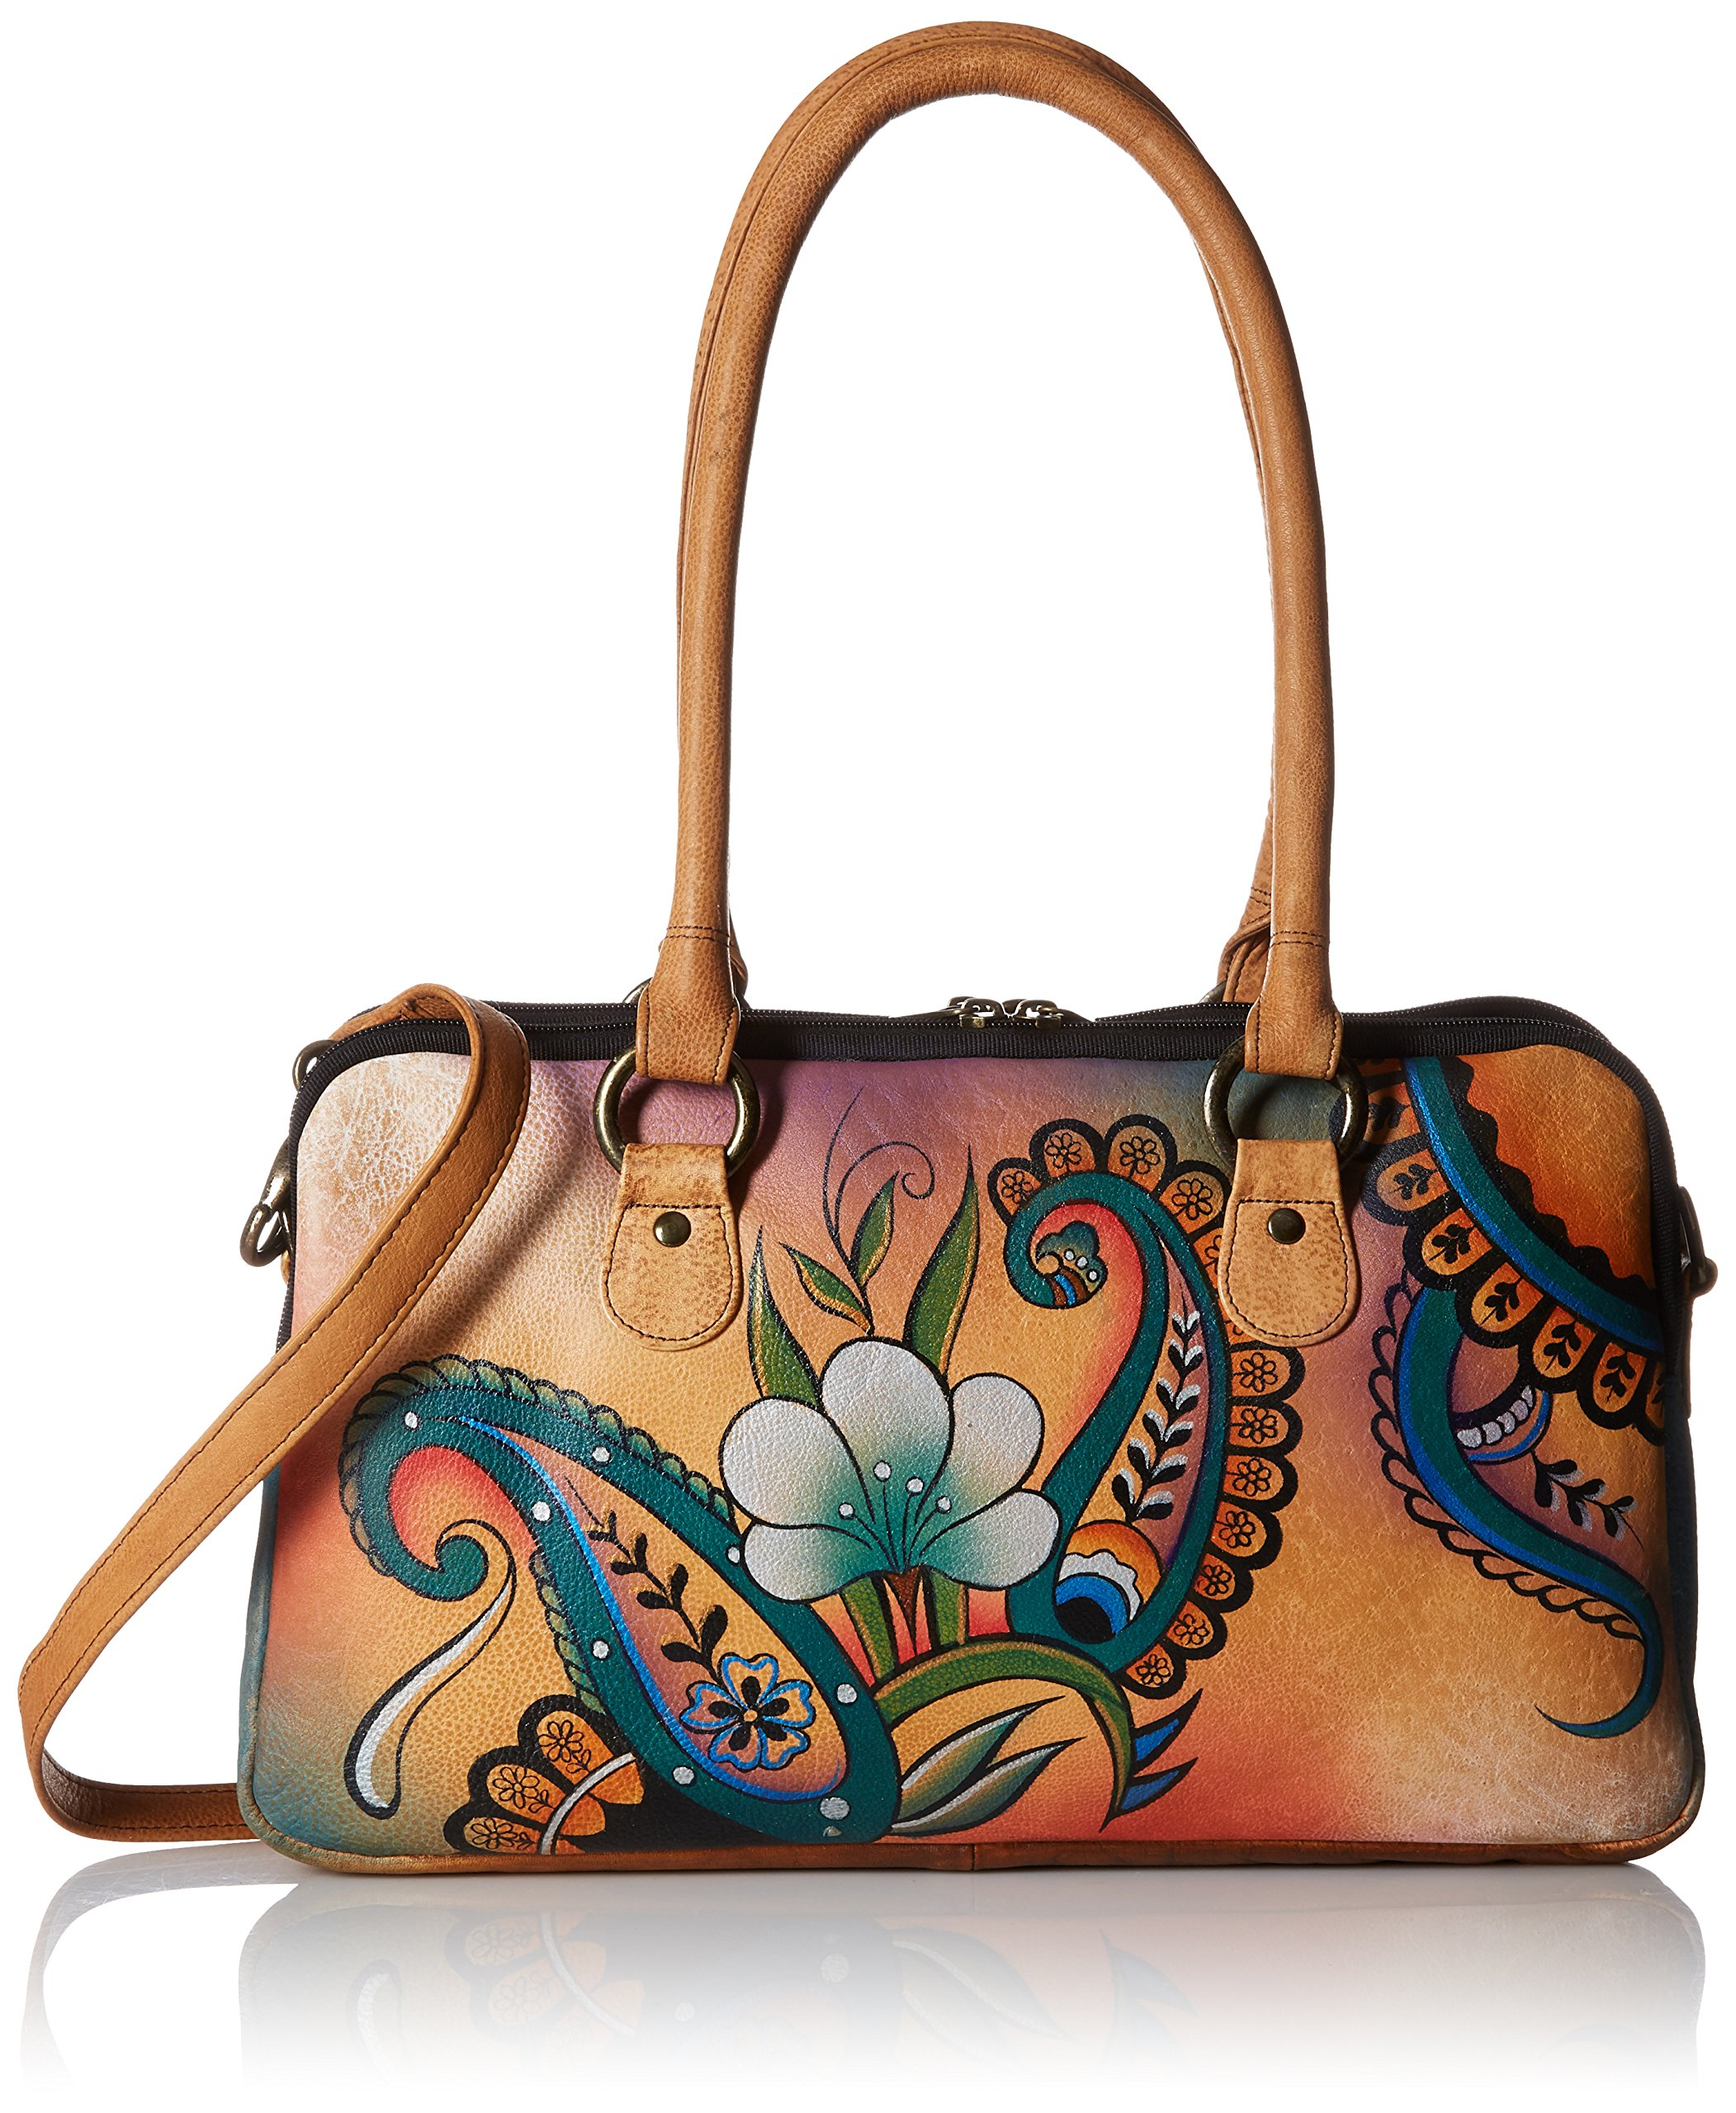 Anna by Anuschka Women's Genuine Leather Satchel | Multi-Compartment | Hand-Painted Original Artwork | Floral Paisley